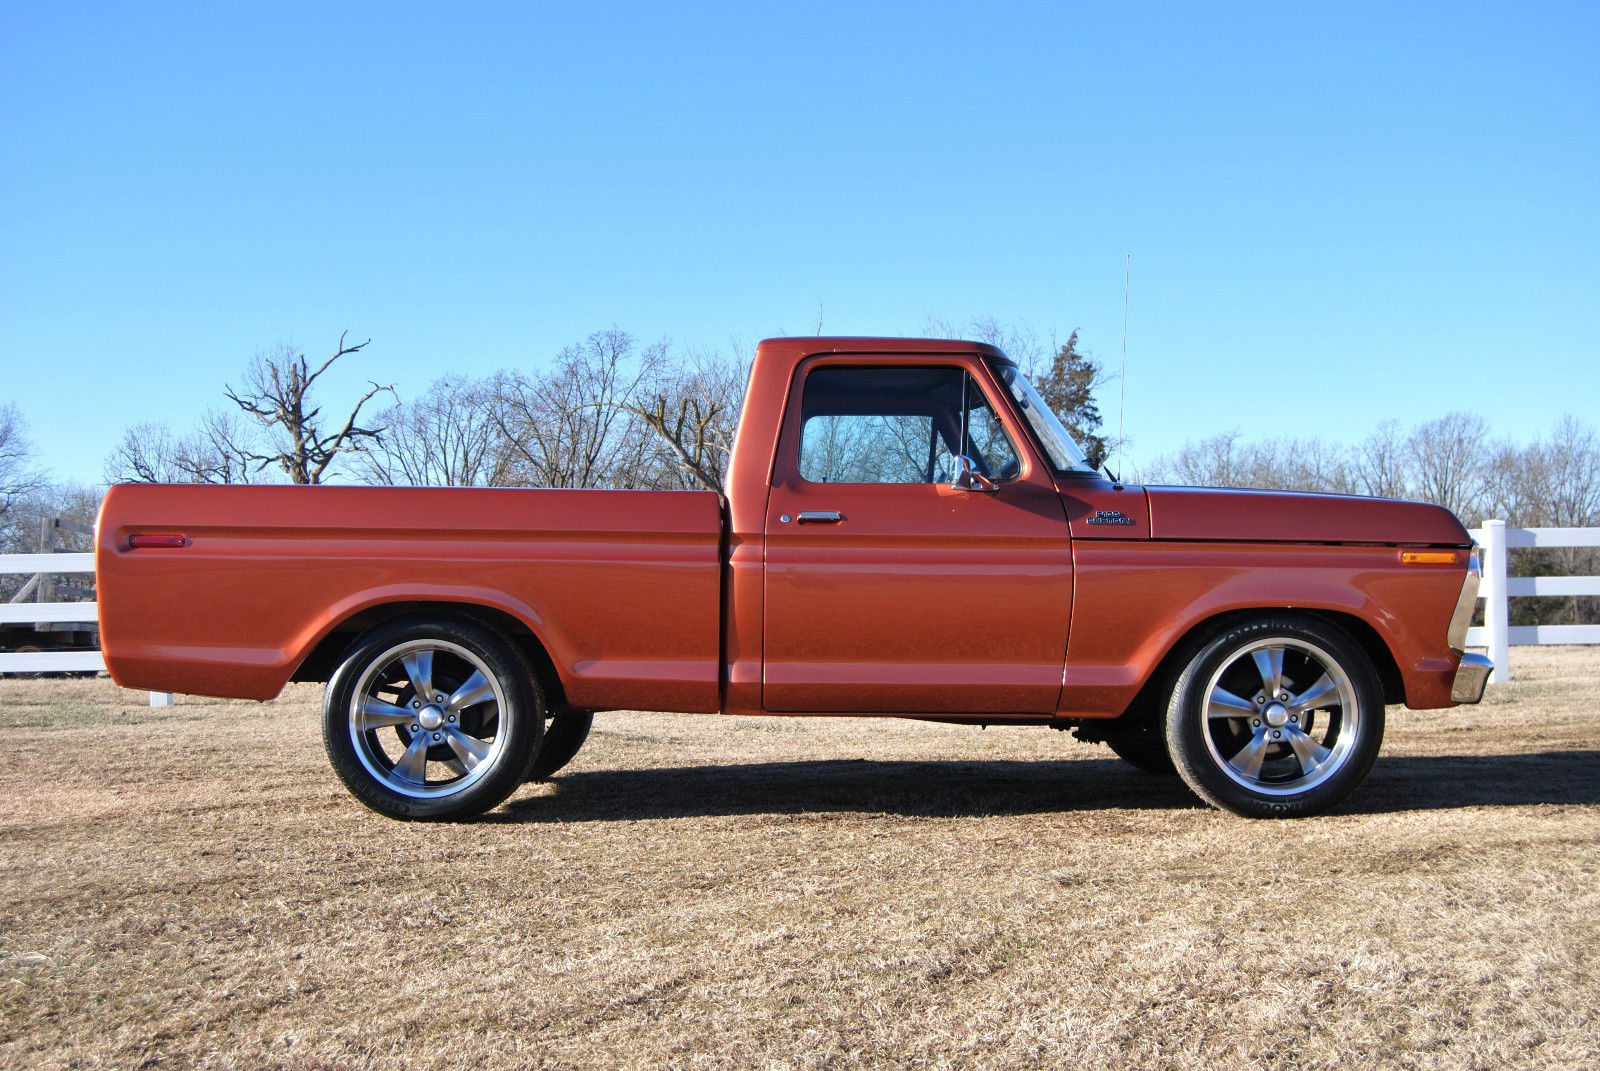 Ford F150 Factory Rims For Sale 1977 F100 Custom New Paint Lowered Rocket Racing Wheels ...